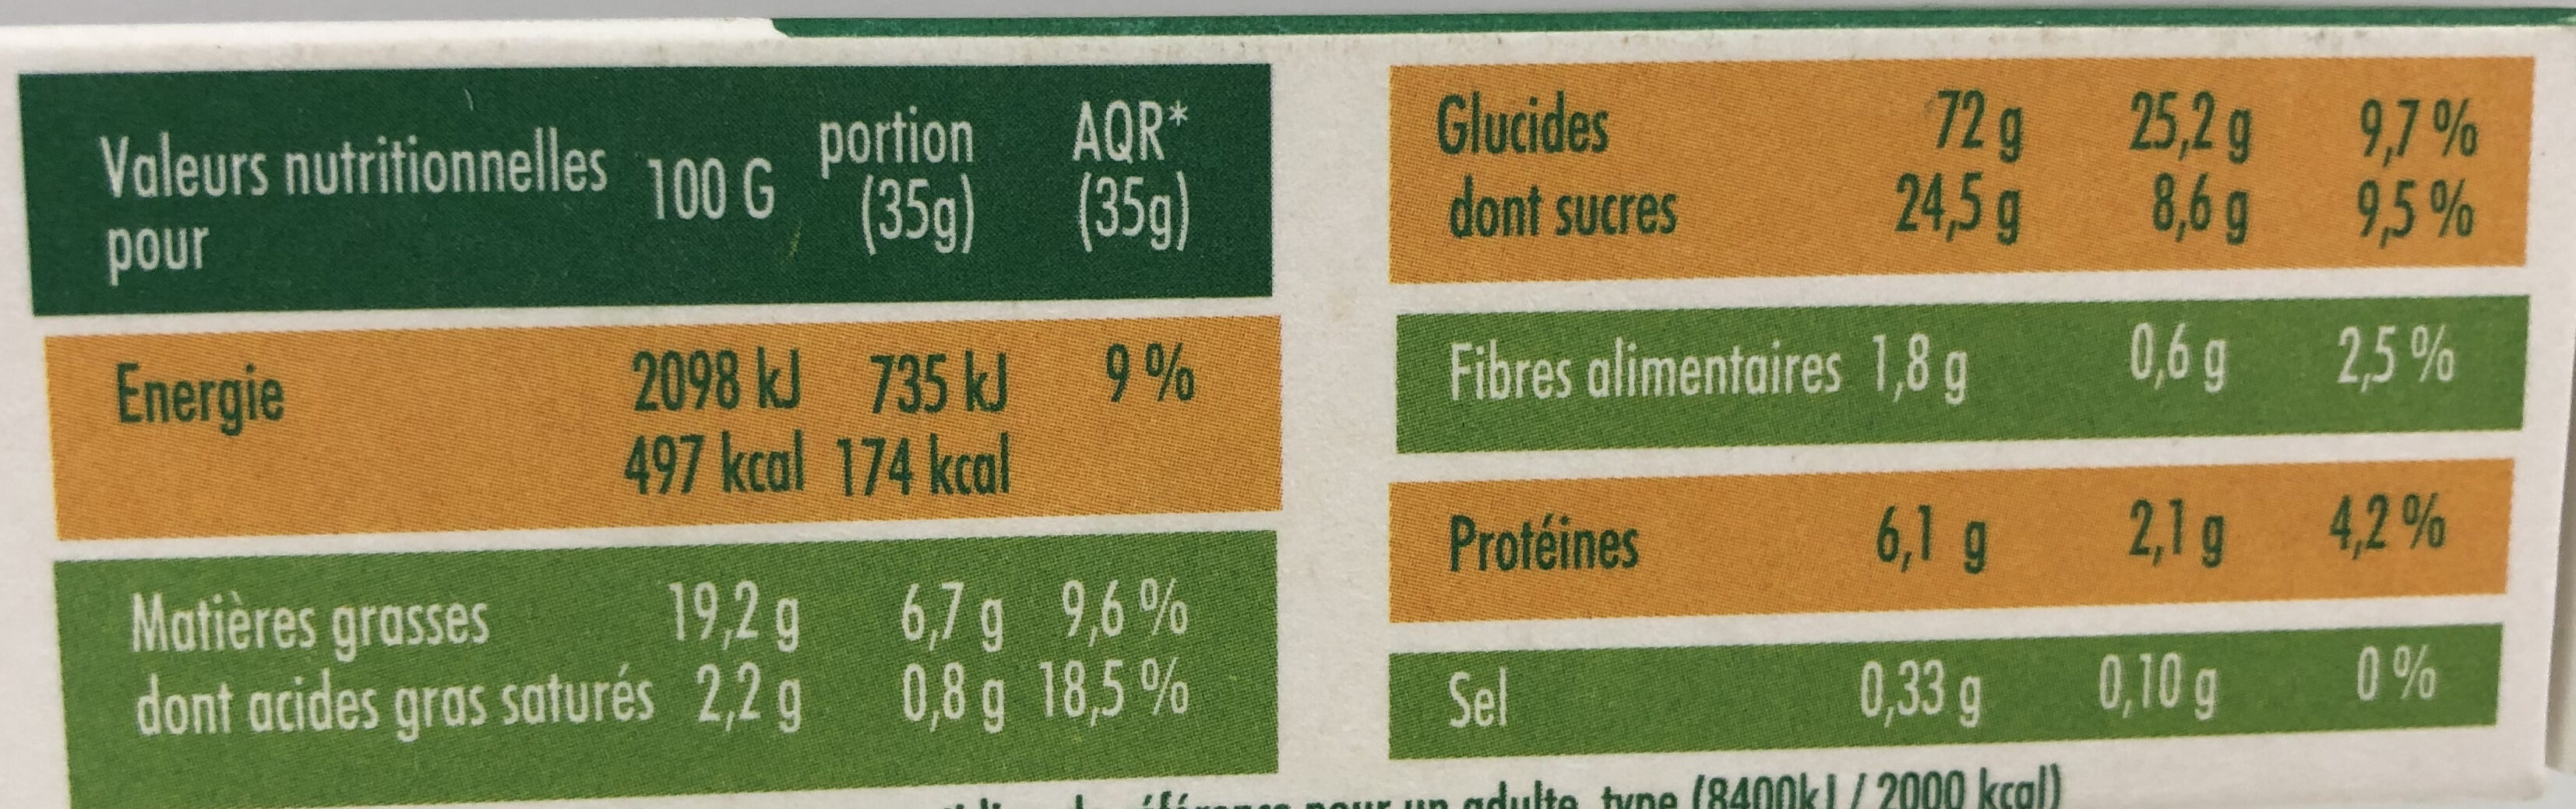 Mon Biscuit Bio Chocolat - Nutrition facts